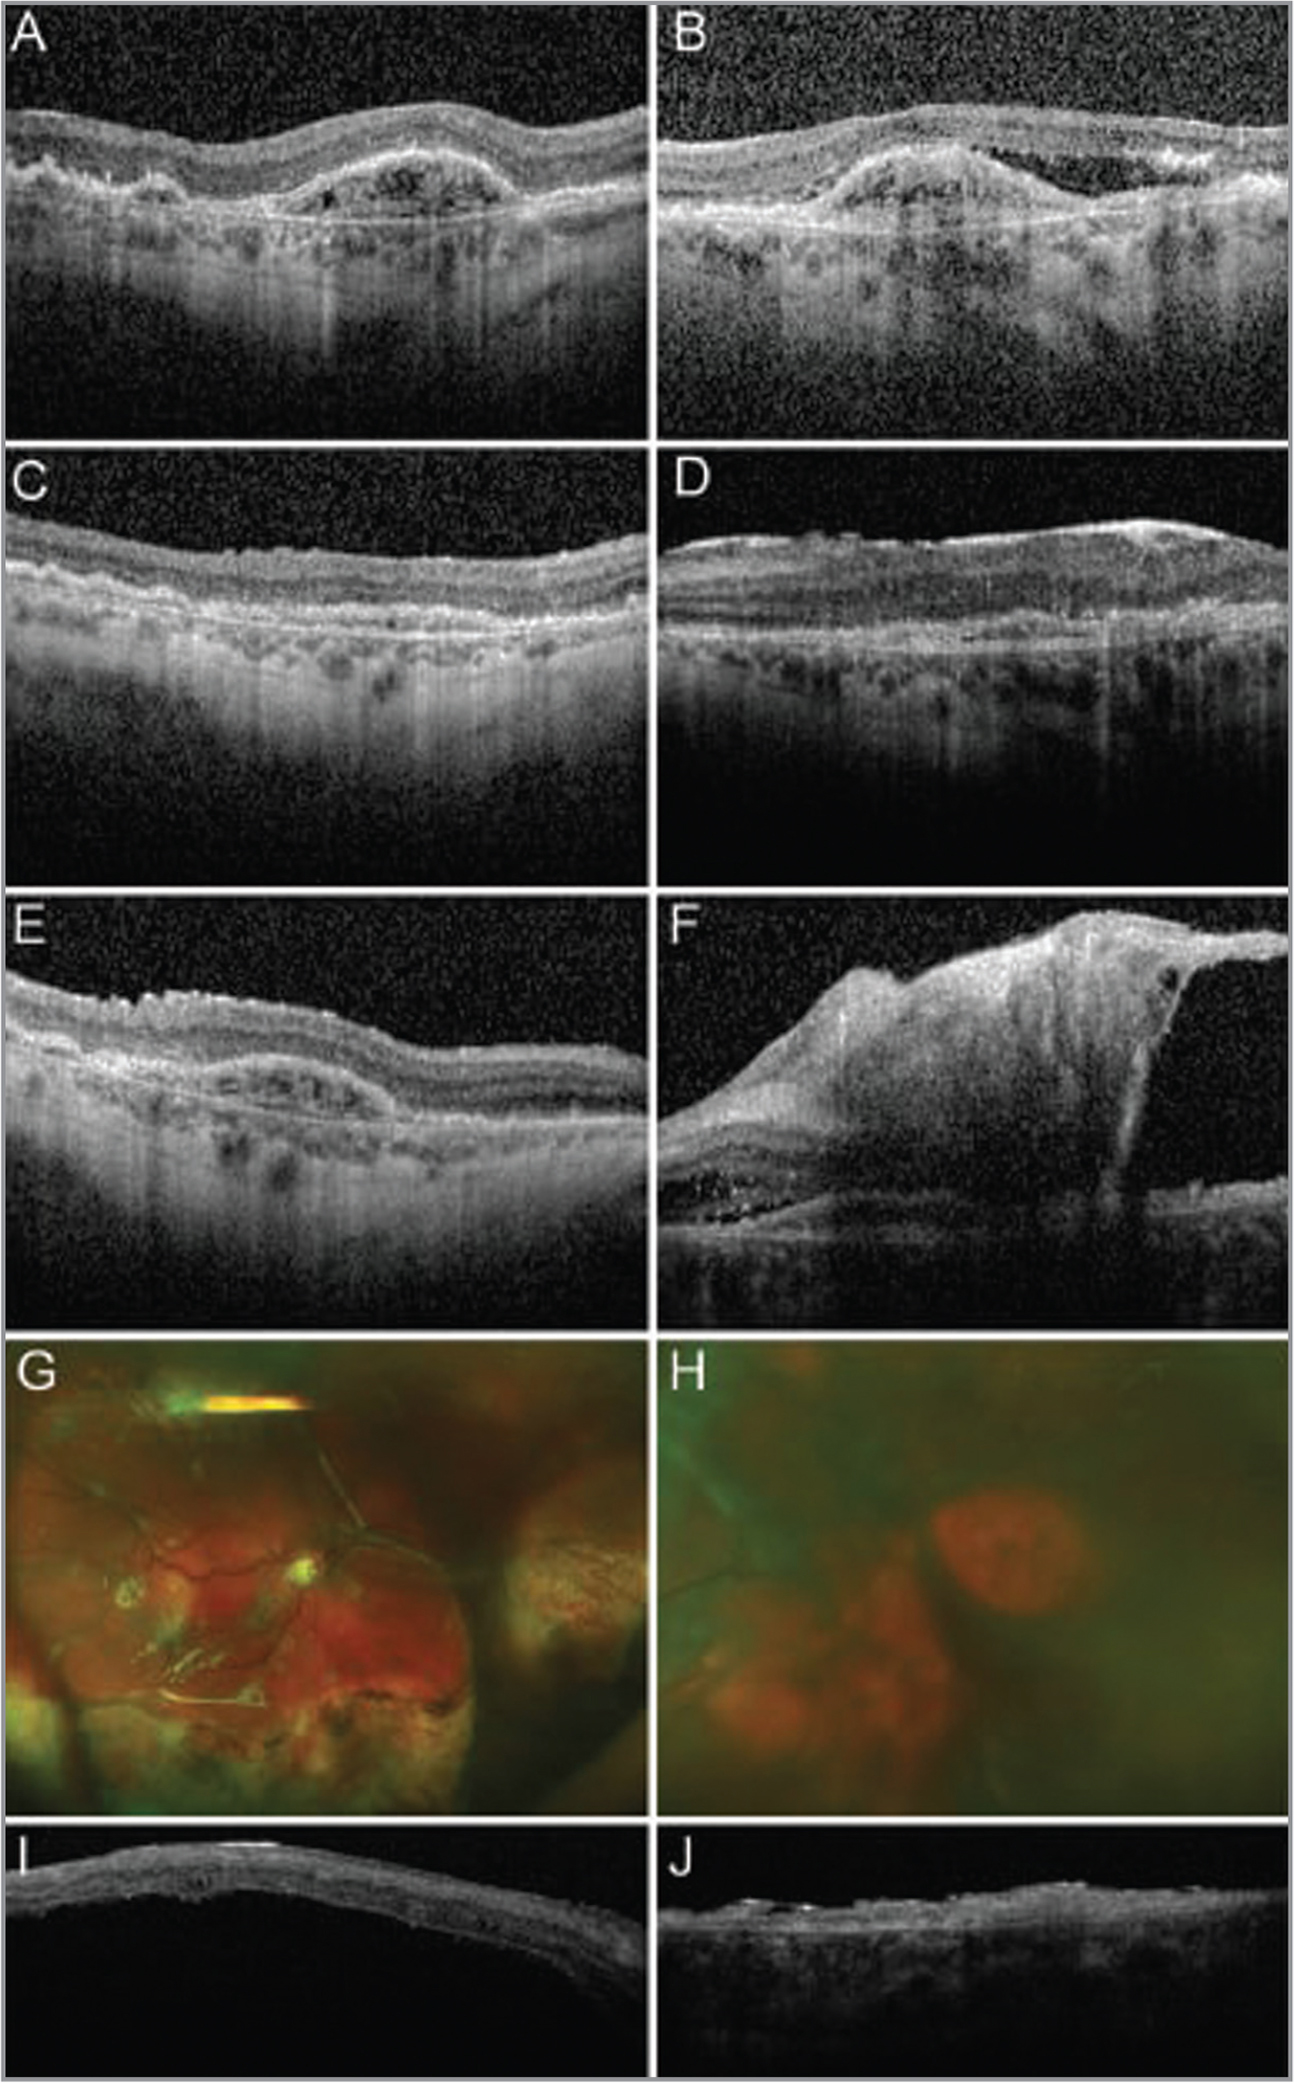 "Baseline optical coherence tomography (OCT) images are shown 4 months prior to autologous ""stem cell"" injections (ASCIs) in the right (A) and left (B) eyes. Three weeks after ASCI, the normal retinal contour was blunted by epiretinal membrane (ERM) formation in the right (C) and left (D) eyes. Vitreous hemorrhage and debris were noted bilaterally. Five weeks after ASCI, the ERM in the right eye progressed, resulting in progressive irregularities in the retinal contour (E). The left eye developed a tractional retinal detachment (RD) (F). By 7 months after ASCI, the patient had undergone a retinal detachment repair in the right eye at an outside institution. Fundus photographs show recurrent rhegmatogenous /tractional RDs with proliferative vitreoretinopathy in the right (G) and left (H) eyes. The view in the left eye is limited by a brunescent cataract. OCT imaging showed detachment of the right macula with a thin, hyperreflective overlying membrane (I). OCT imaging of the left eye showed thinned and atrophic retina with a thin, hyperreflective overlying membrane (J)."